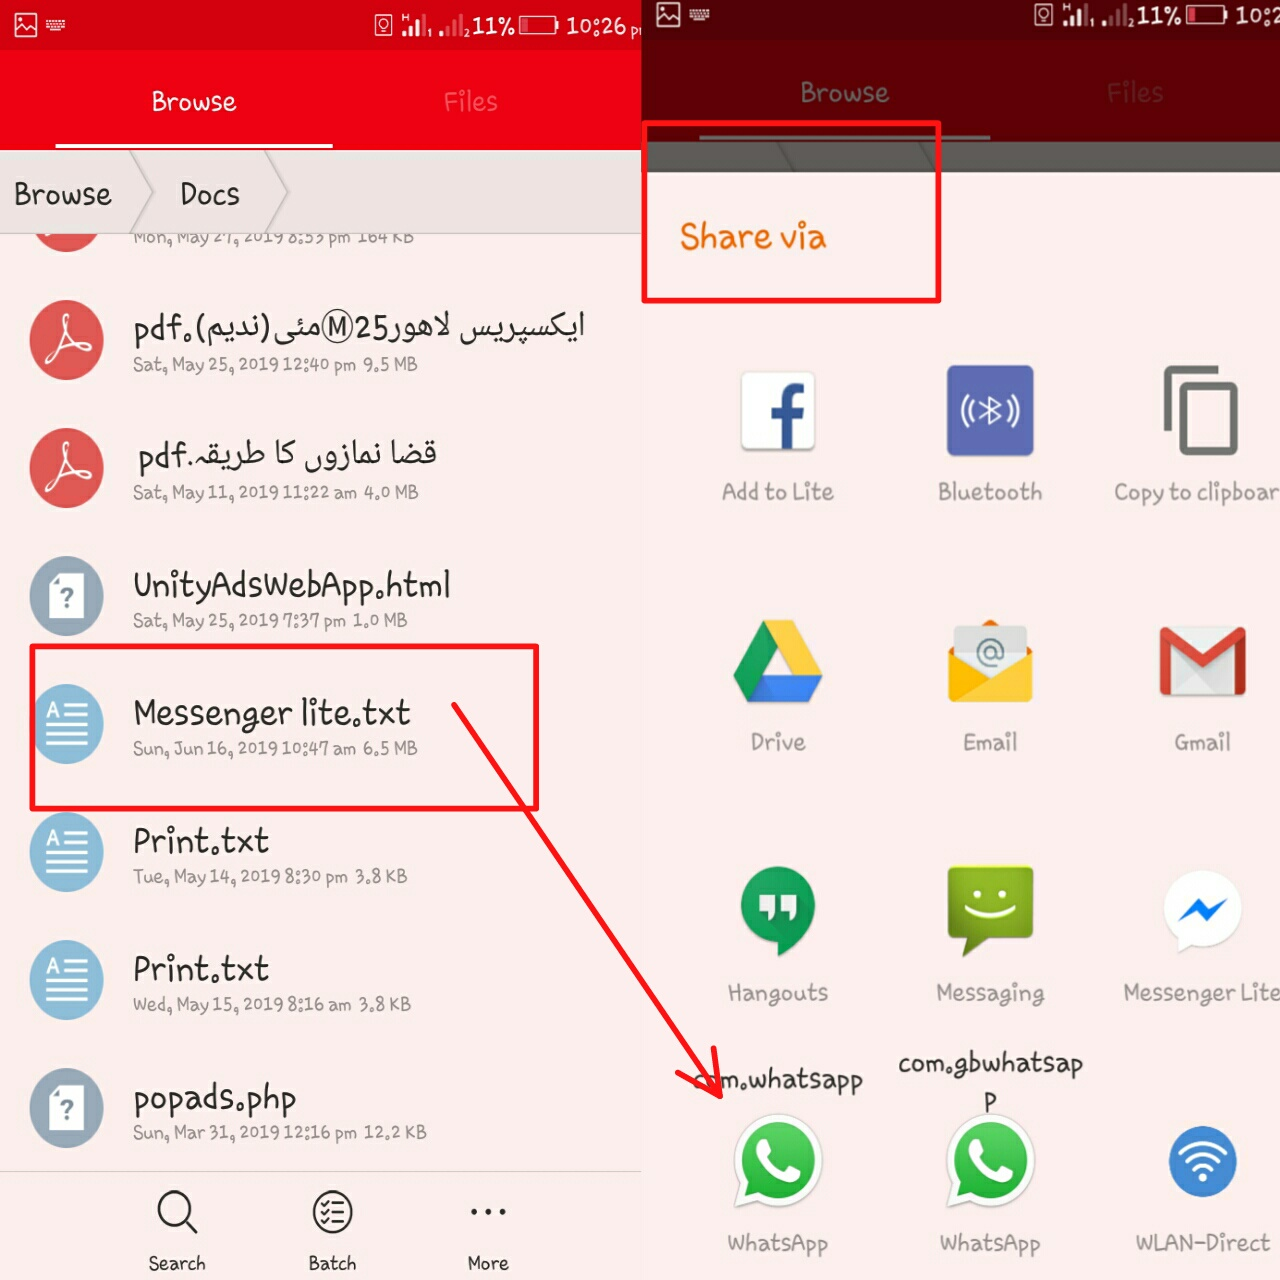 How To Share/Send Games And Apps Apk Trough WhatsApp | Full Guide